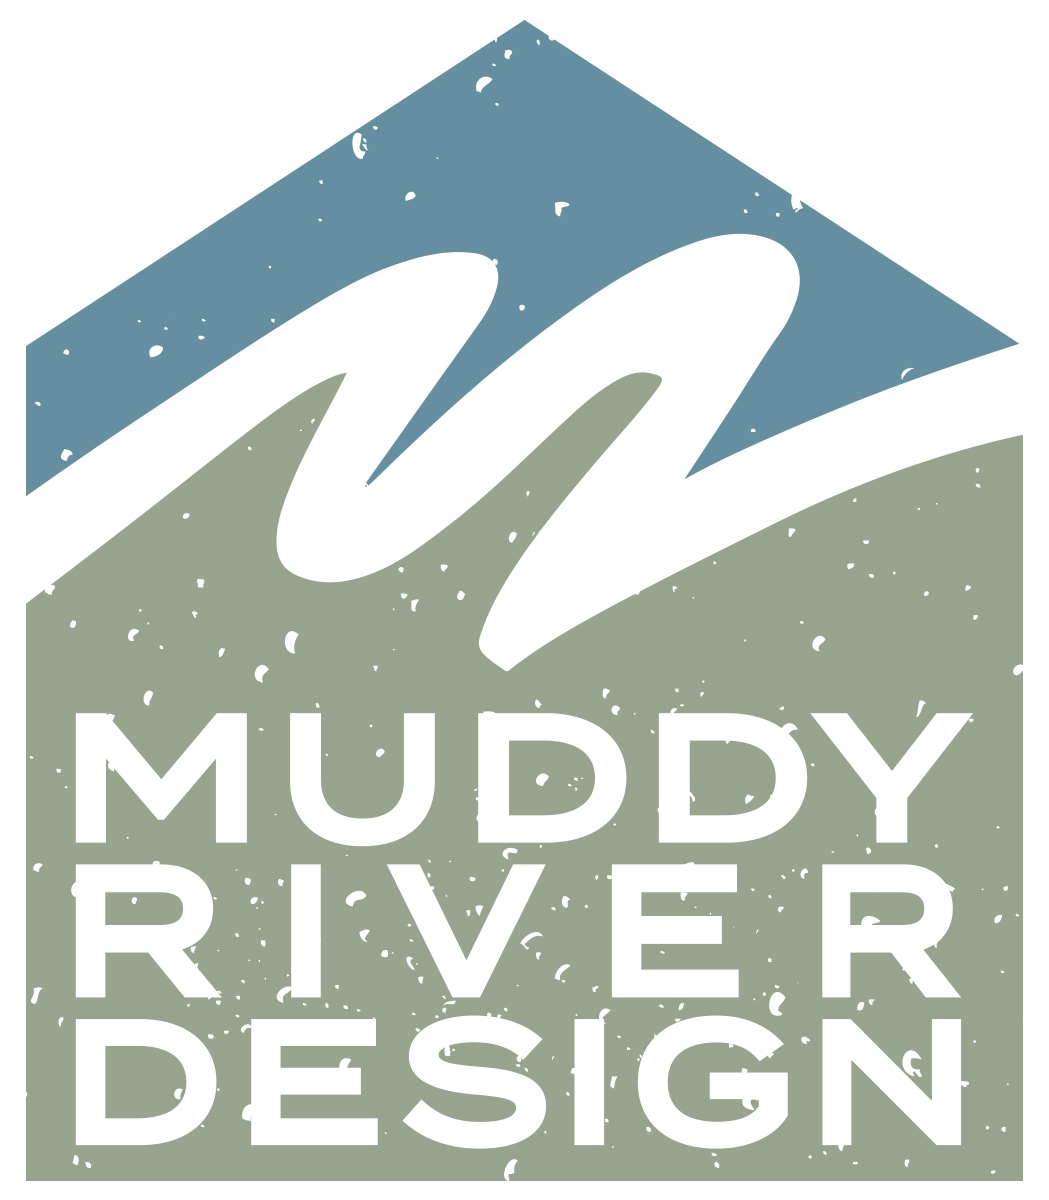 Muddy-River-Design logo